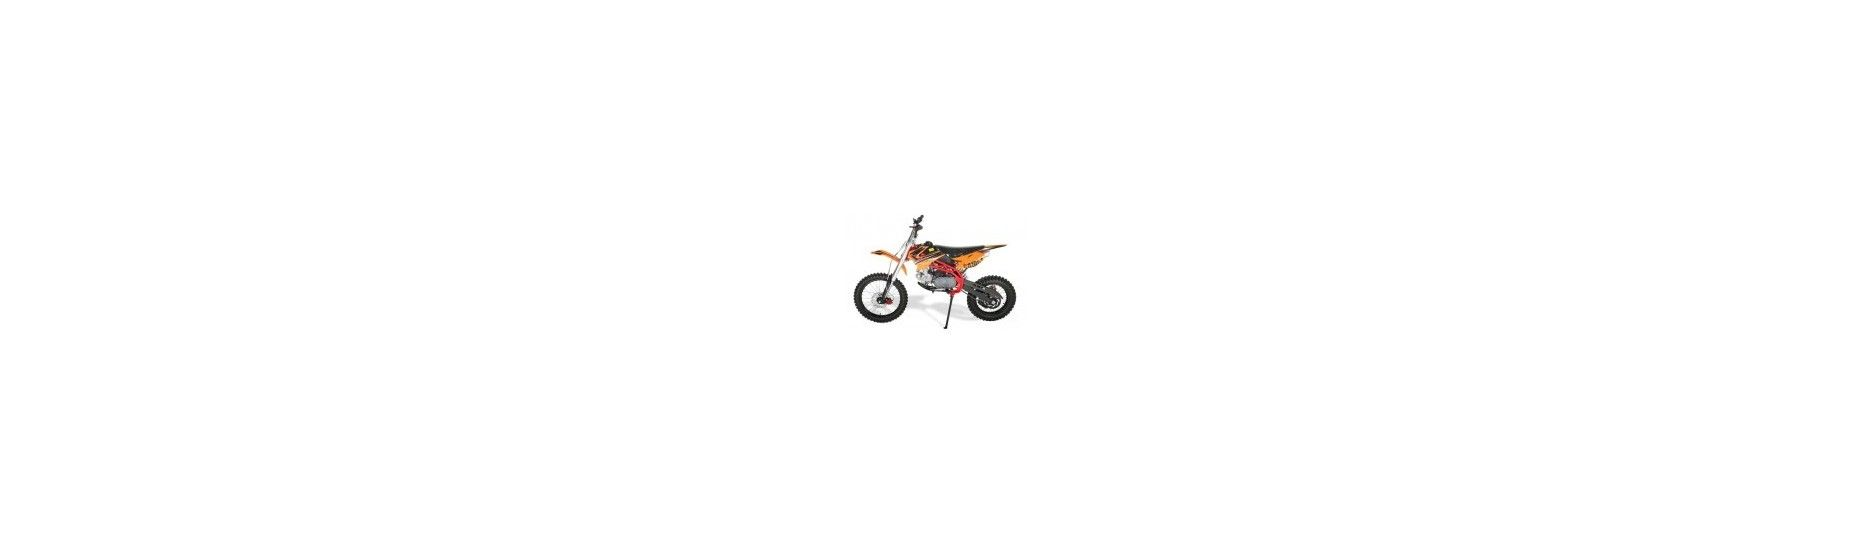 Pitbike